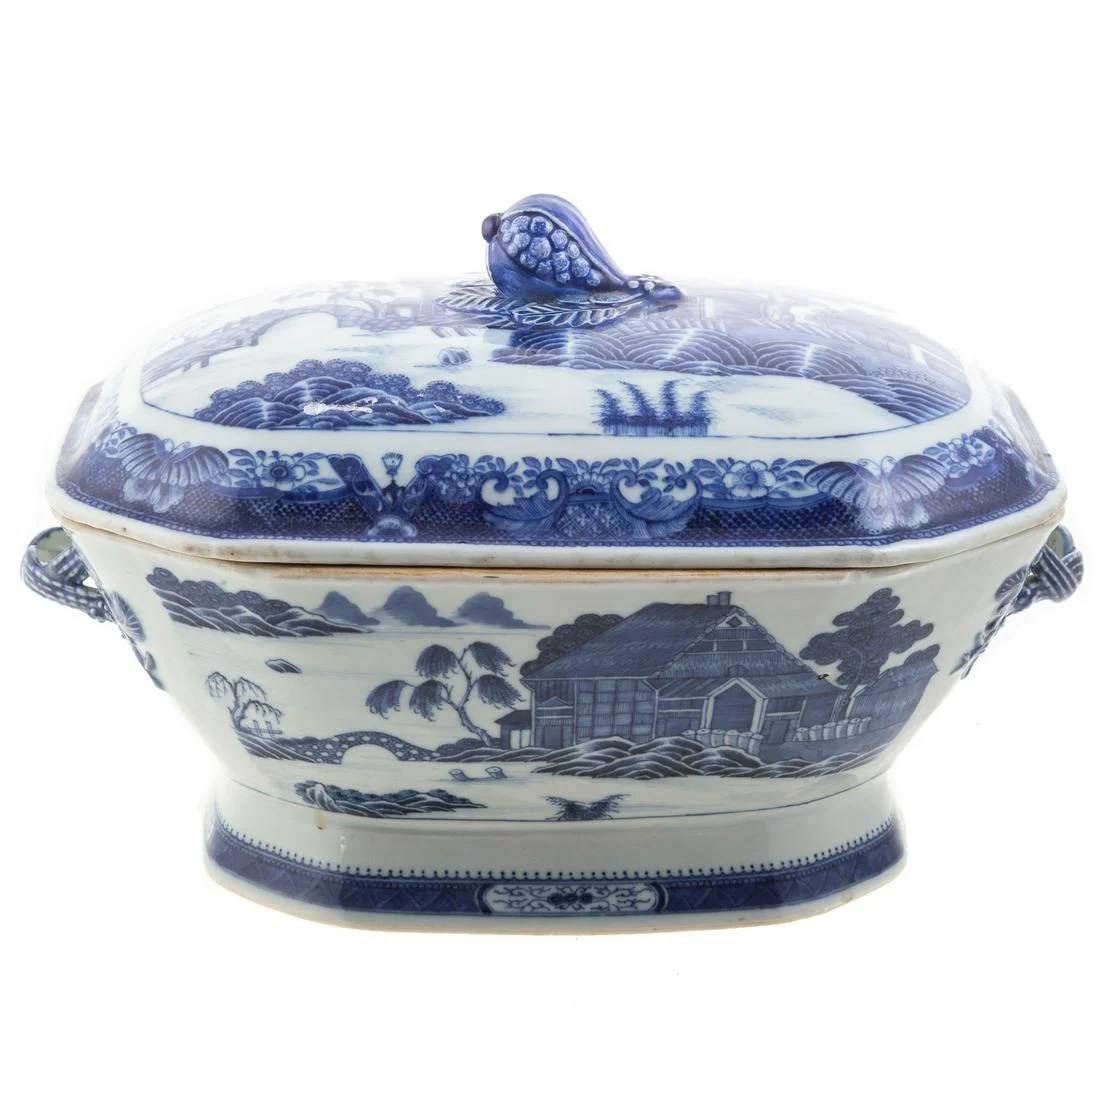 Chinese Export Soup Tureen, Log Cabin Pattern